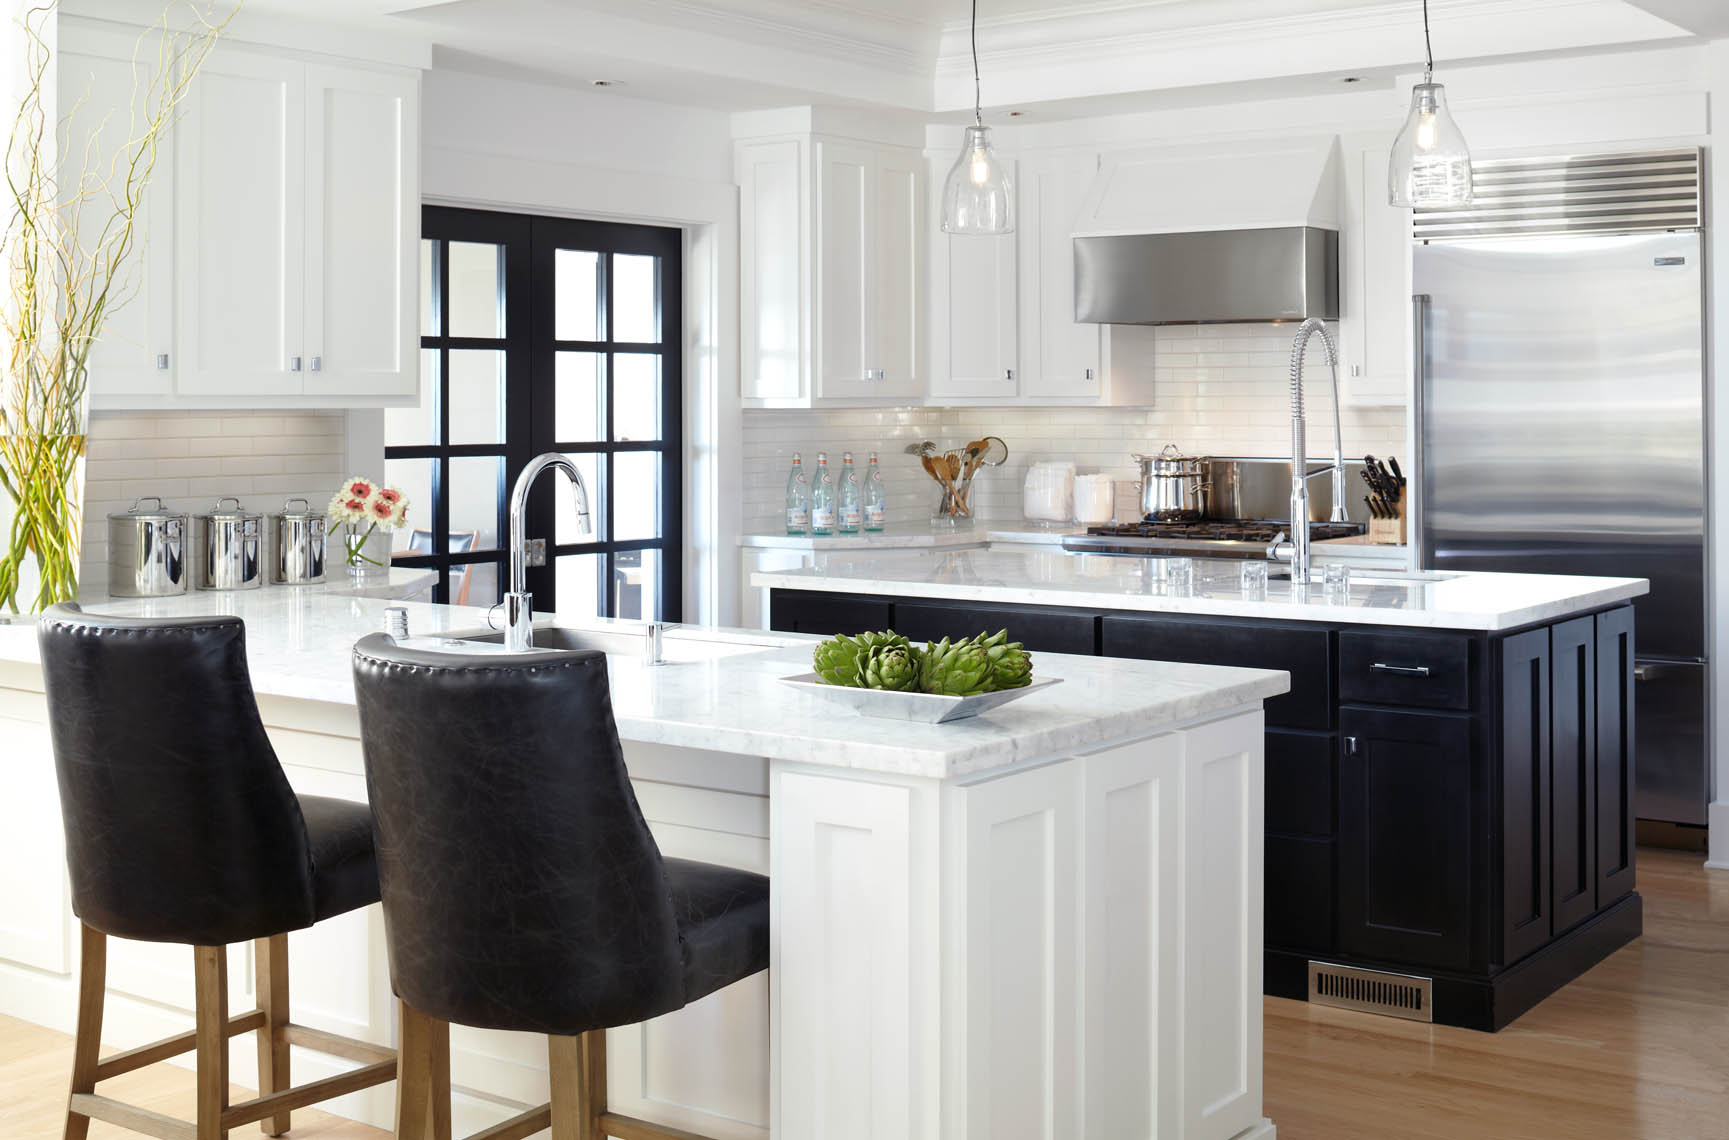 UrrutiaDesign_Greenbrae_Kitchen